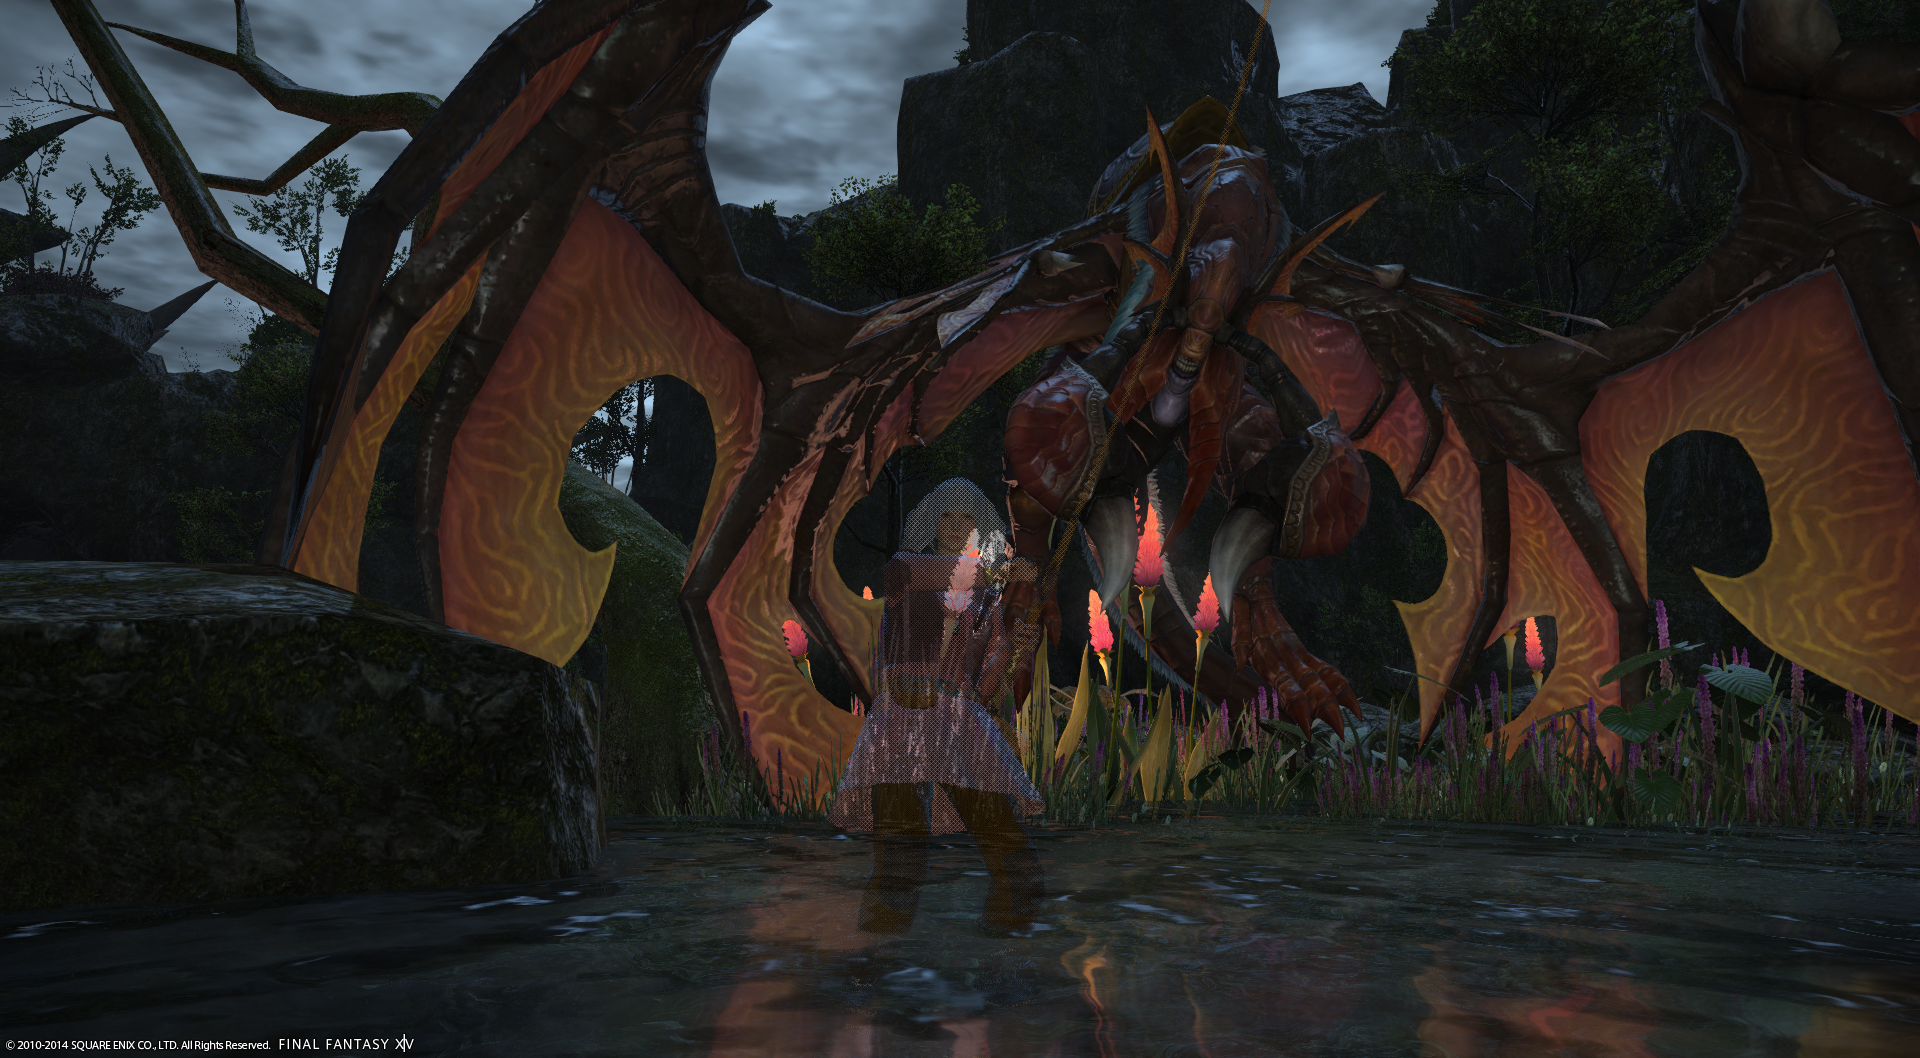 samanosukeshiva ffxiv scaling them hurts down bucket size file need bigger 1920 stupid reborn screenshot thread realm fantasy 1017 somewhat less with release final